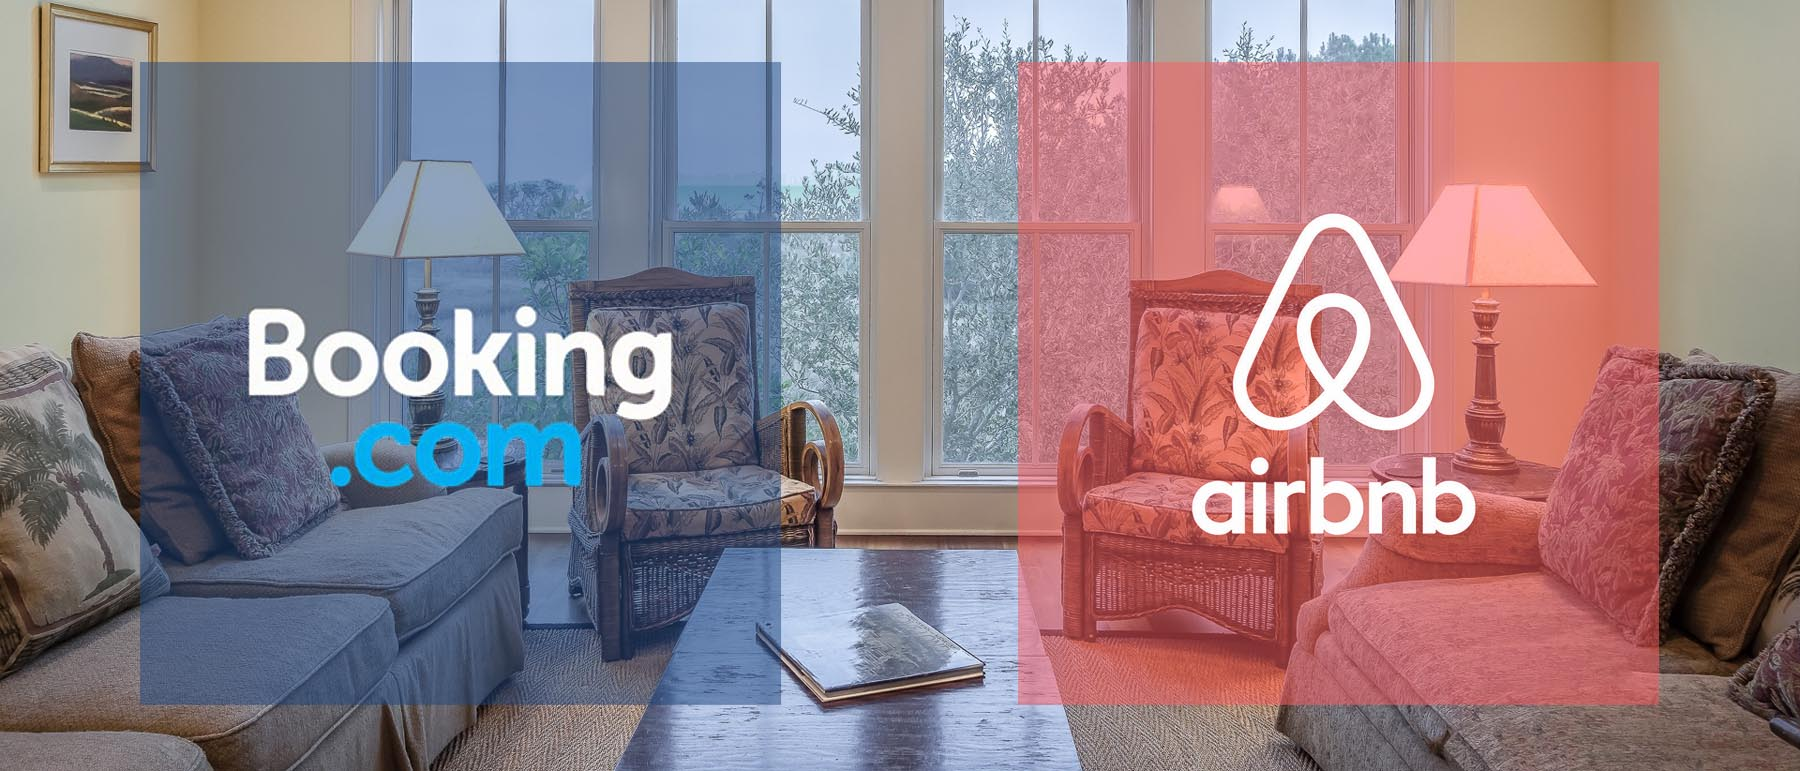 Booking vs Airbnb